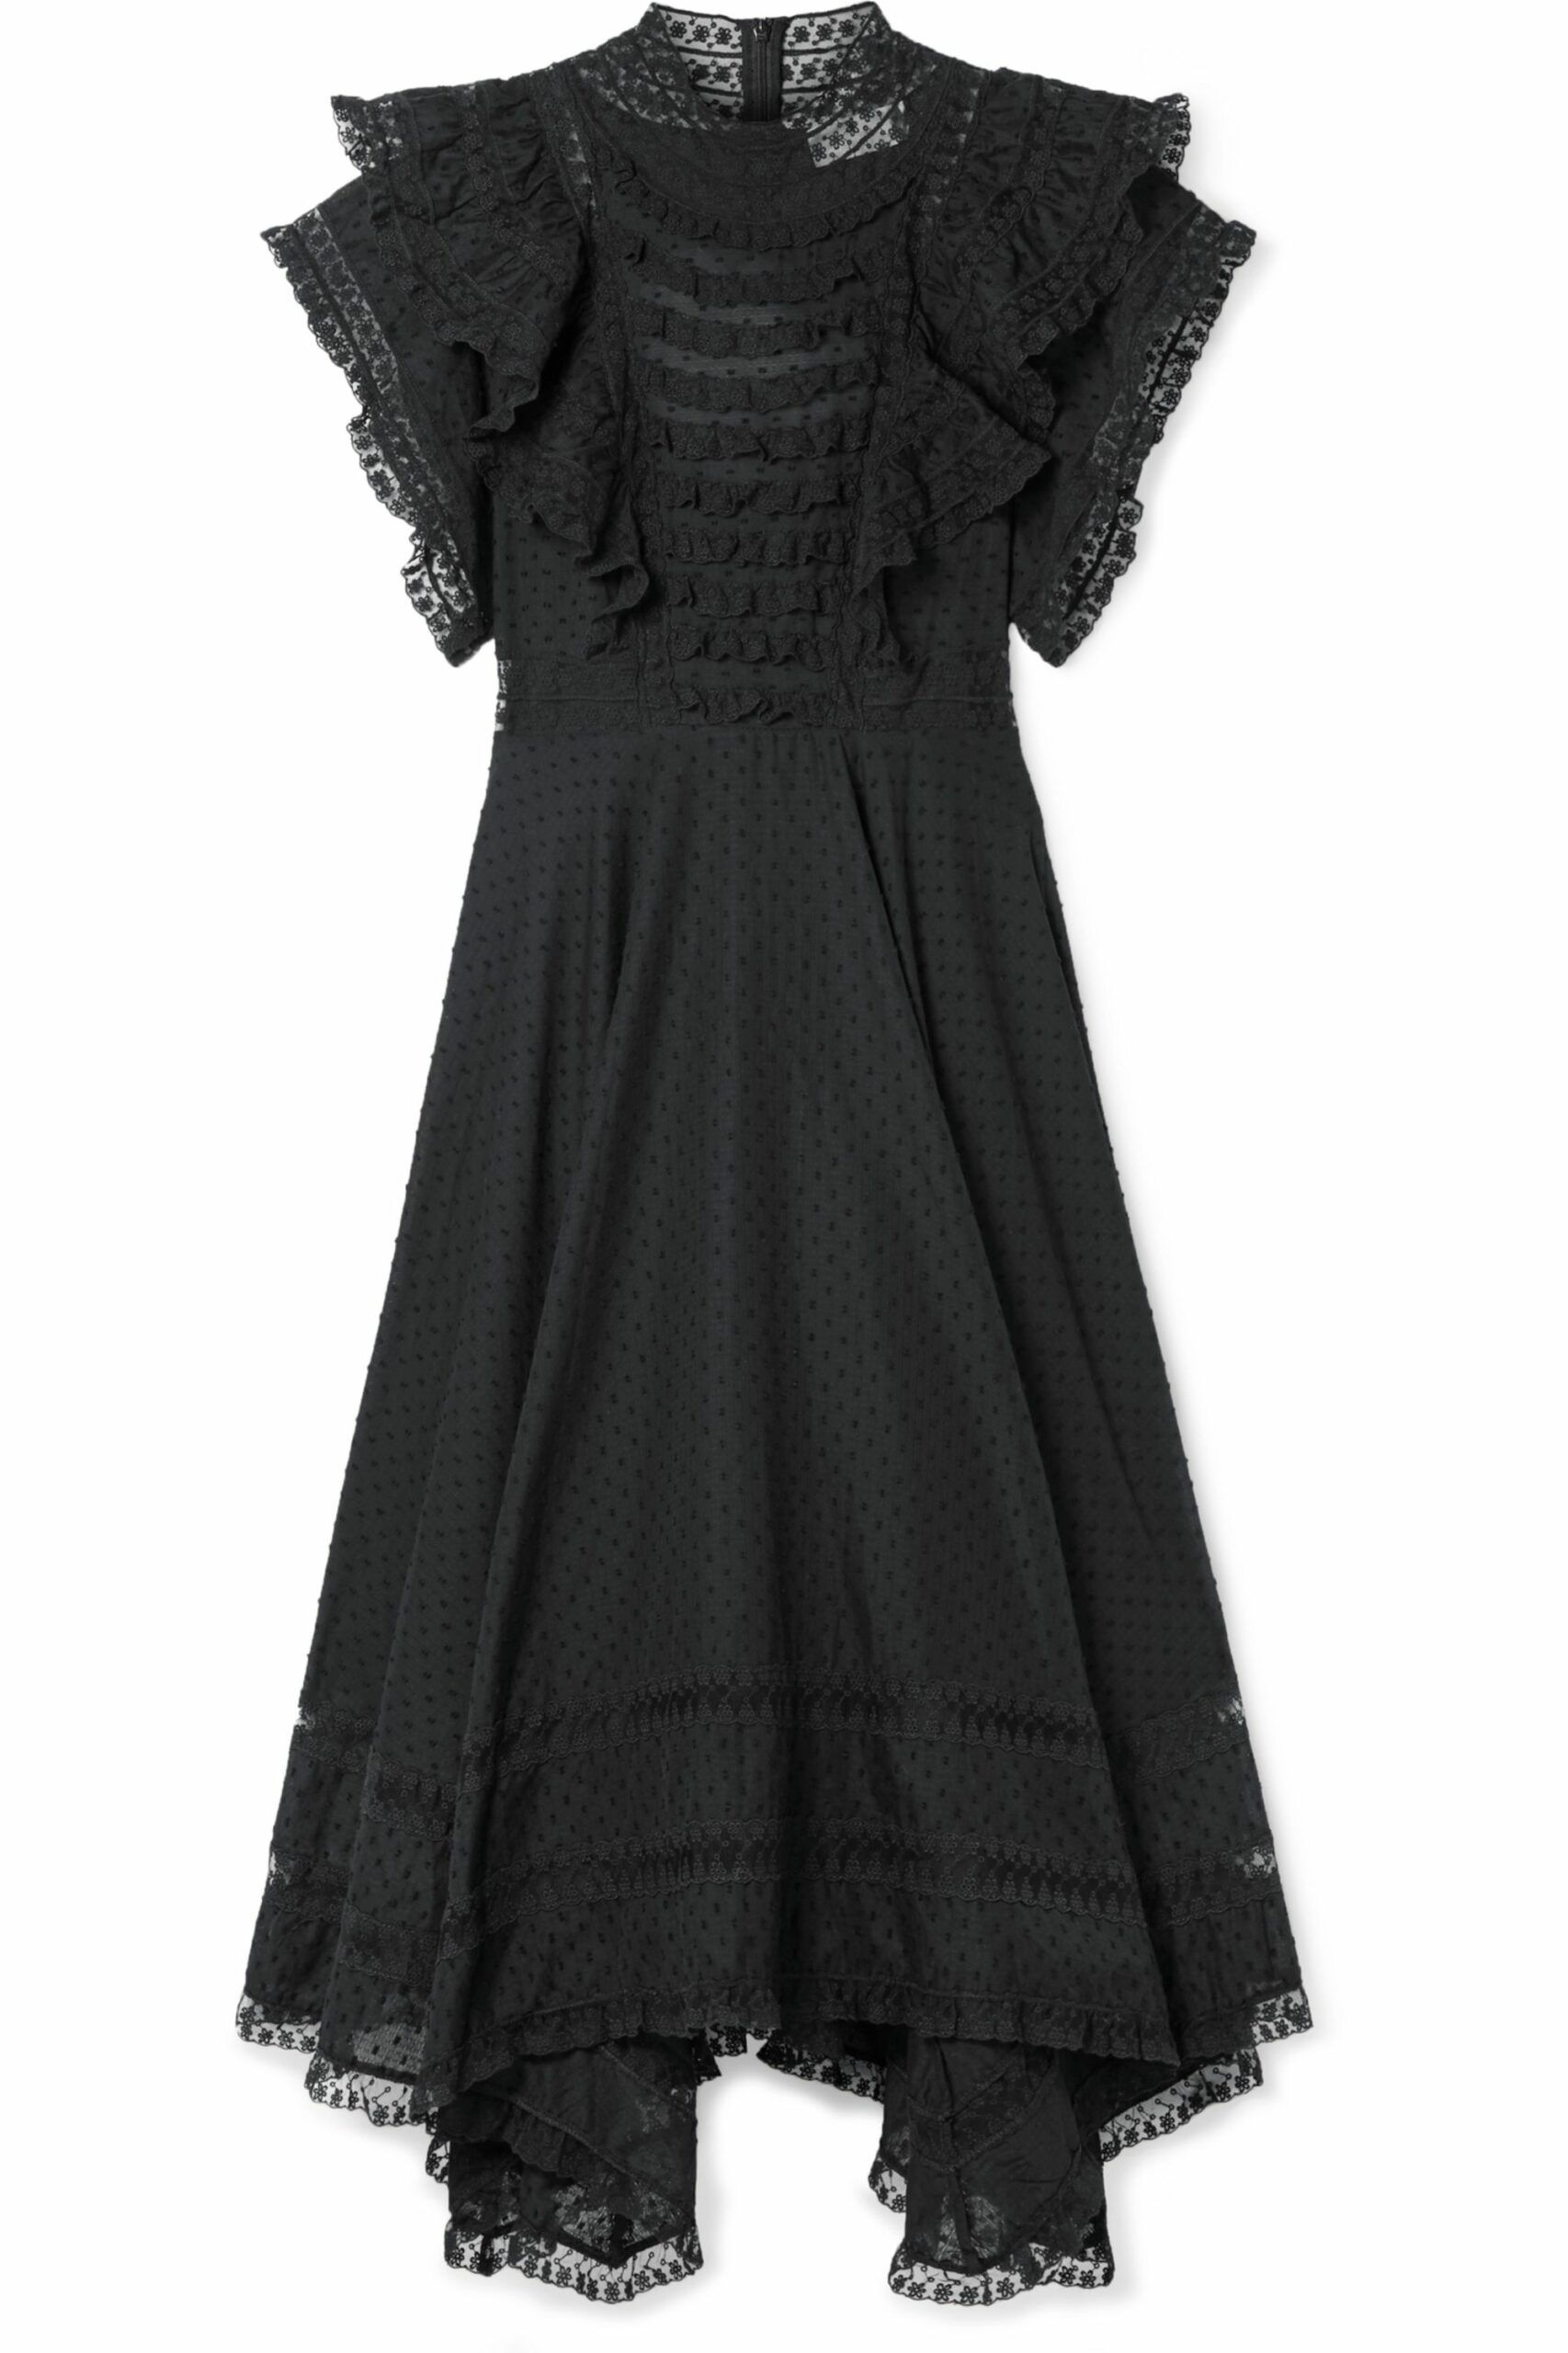 Zimmermann Kleid Punkte in 8  Cotton voile dress, Dresses